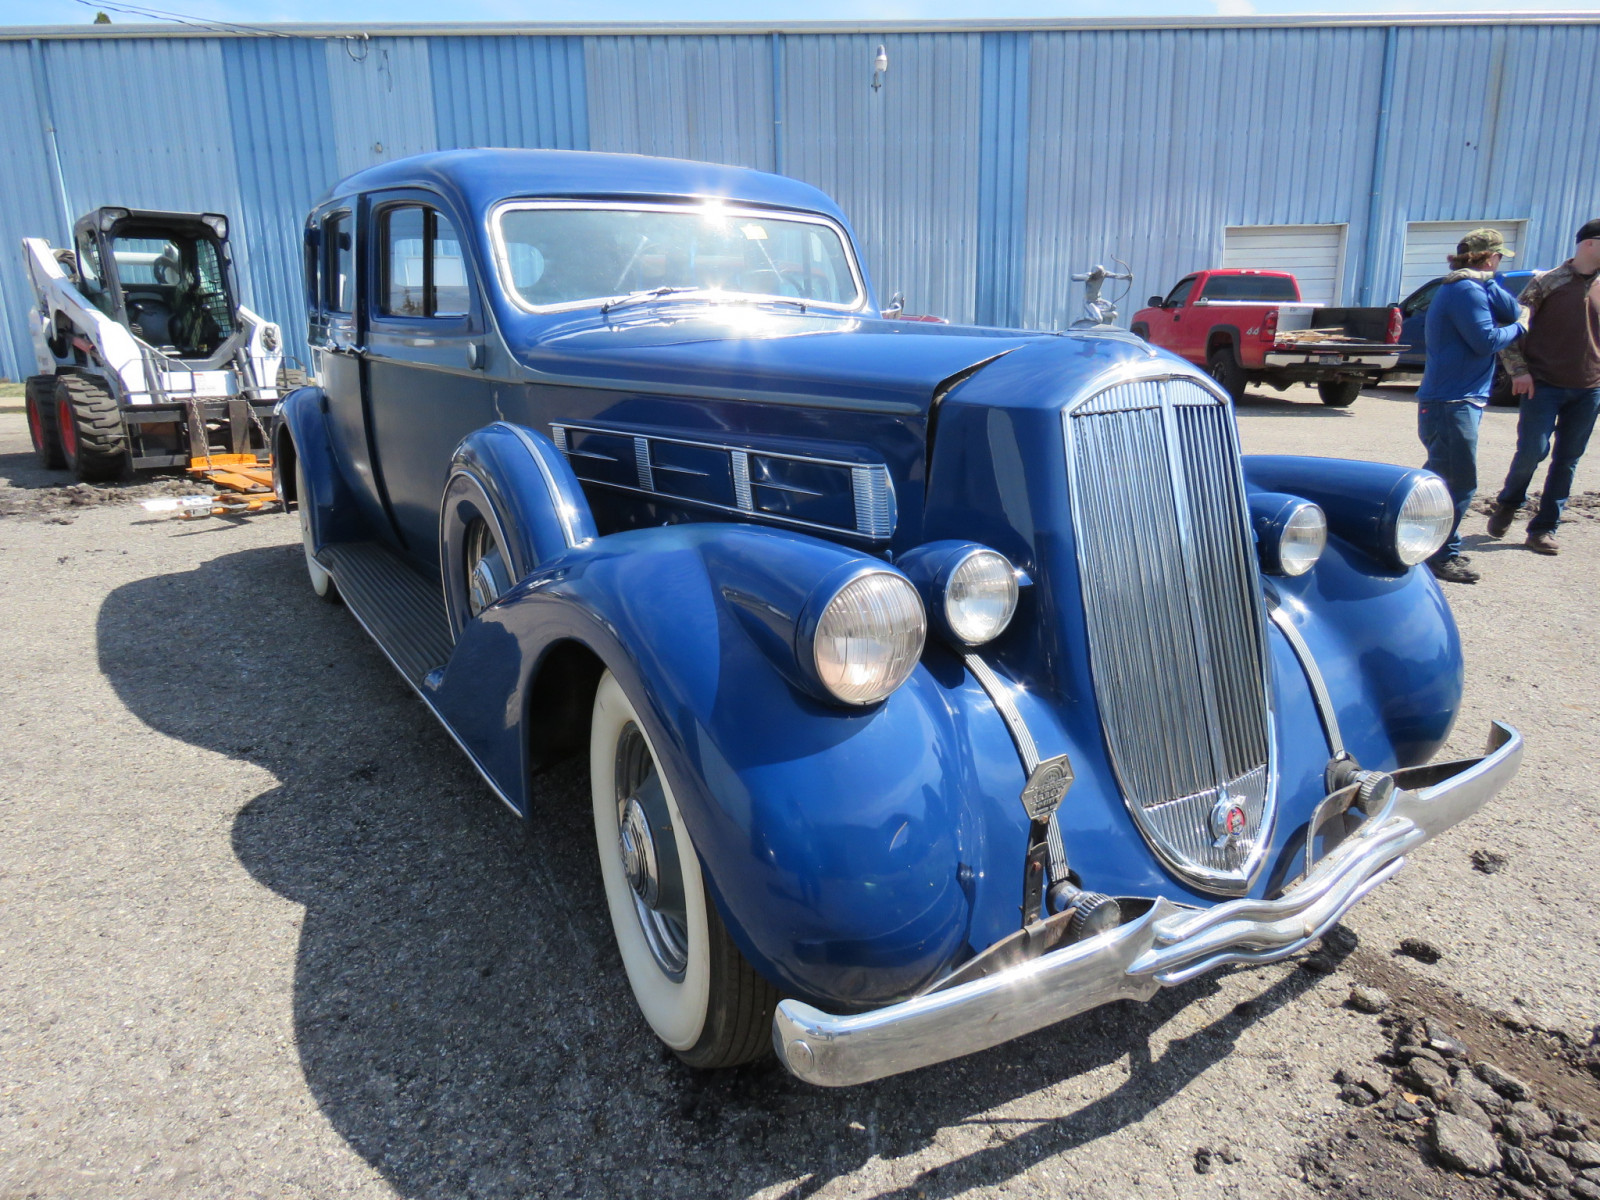 1936 Pierce Arrow V12  Series 1602 5 Passenger Sedan - Image 3